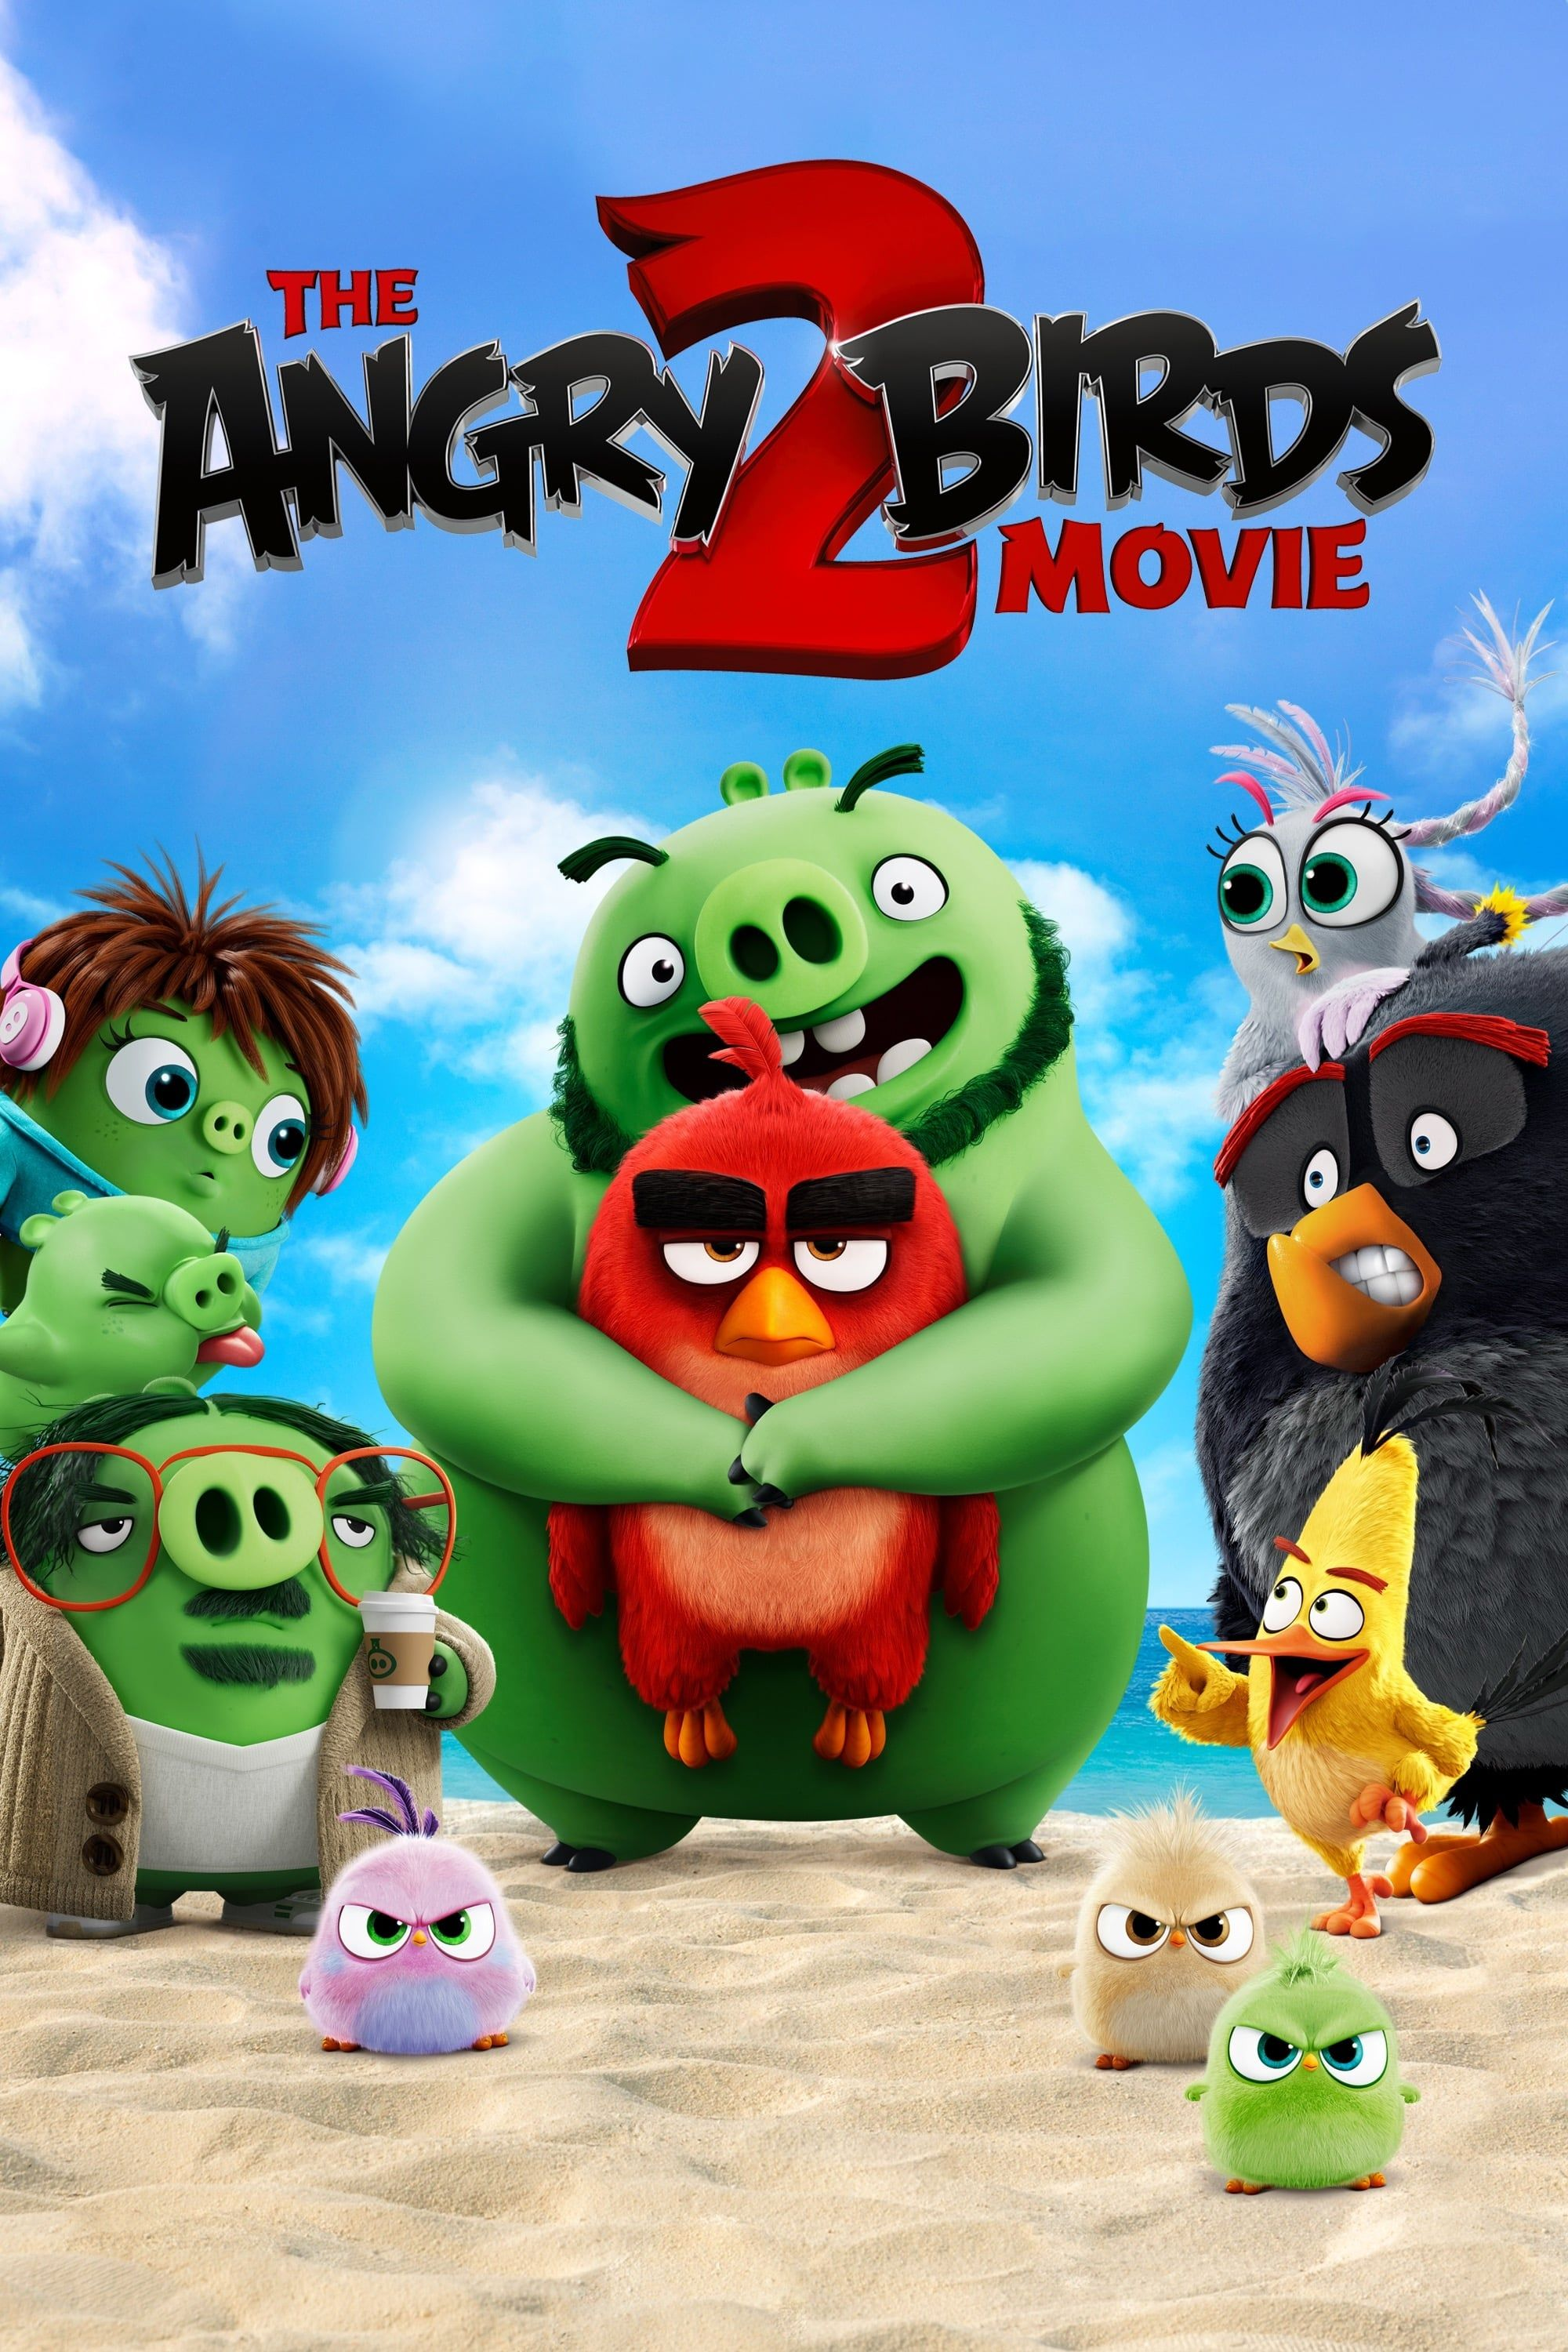 The Angry Birds Movie 2 2019 Full Movie Online Free English Hd 720p 1080p Theangrybi Películas Completas Gratis Películas Gratis Ver Películas Gratis Online